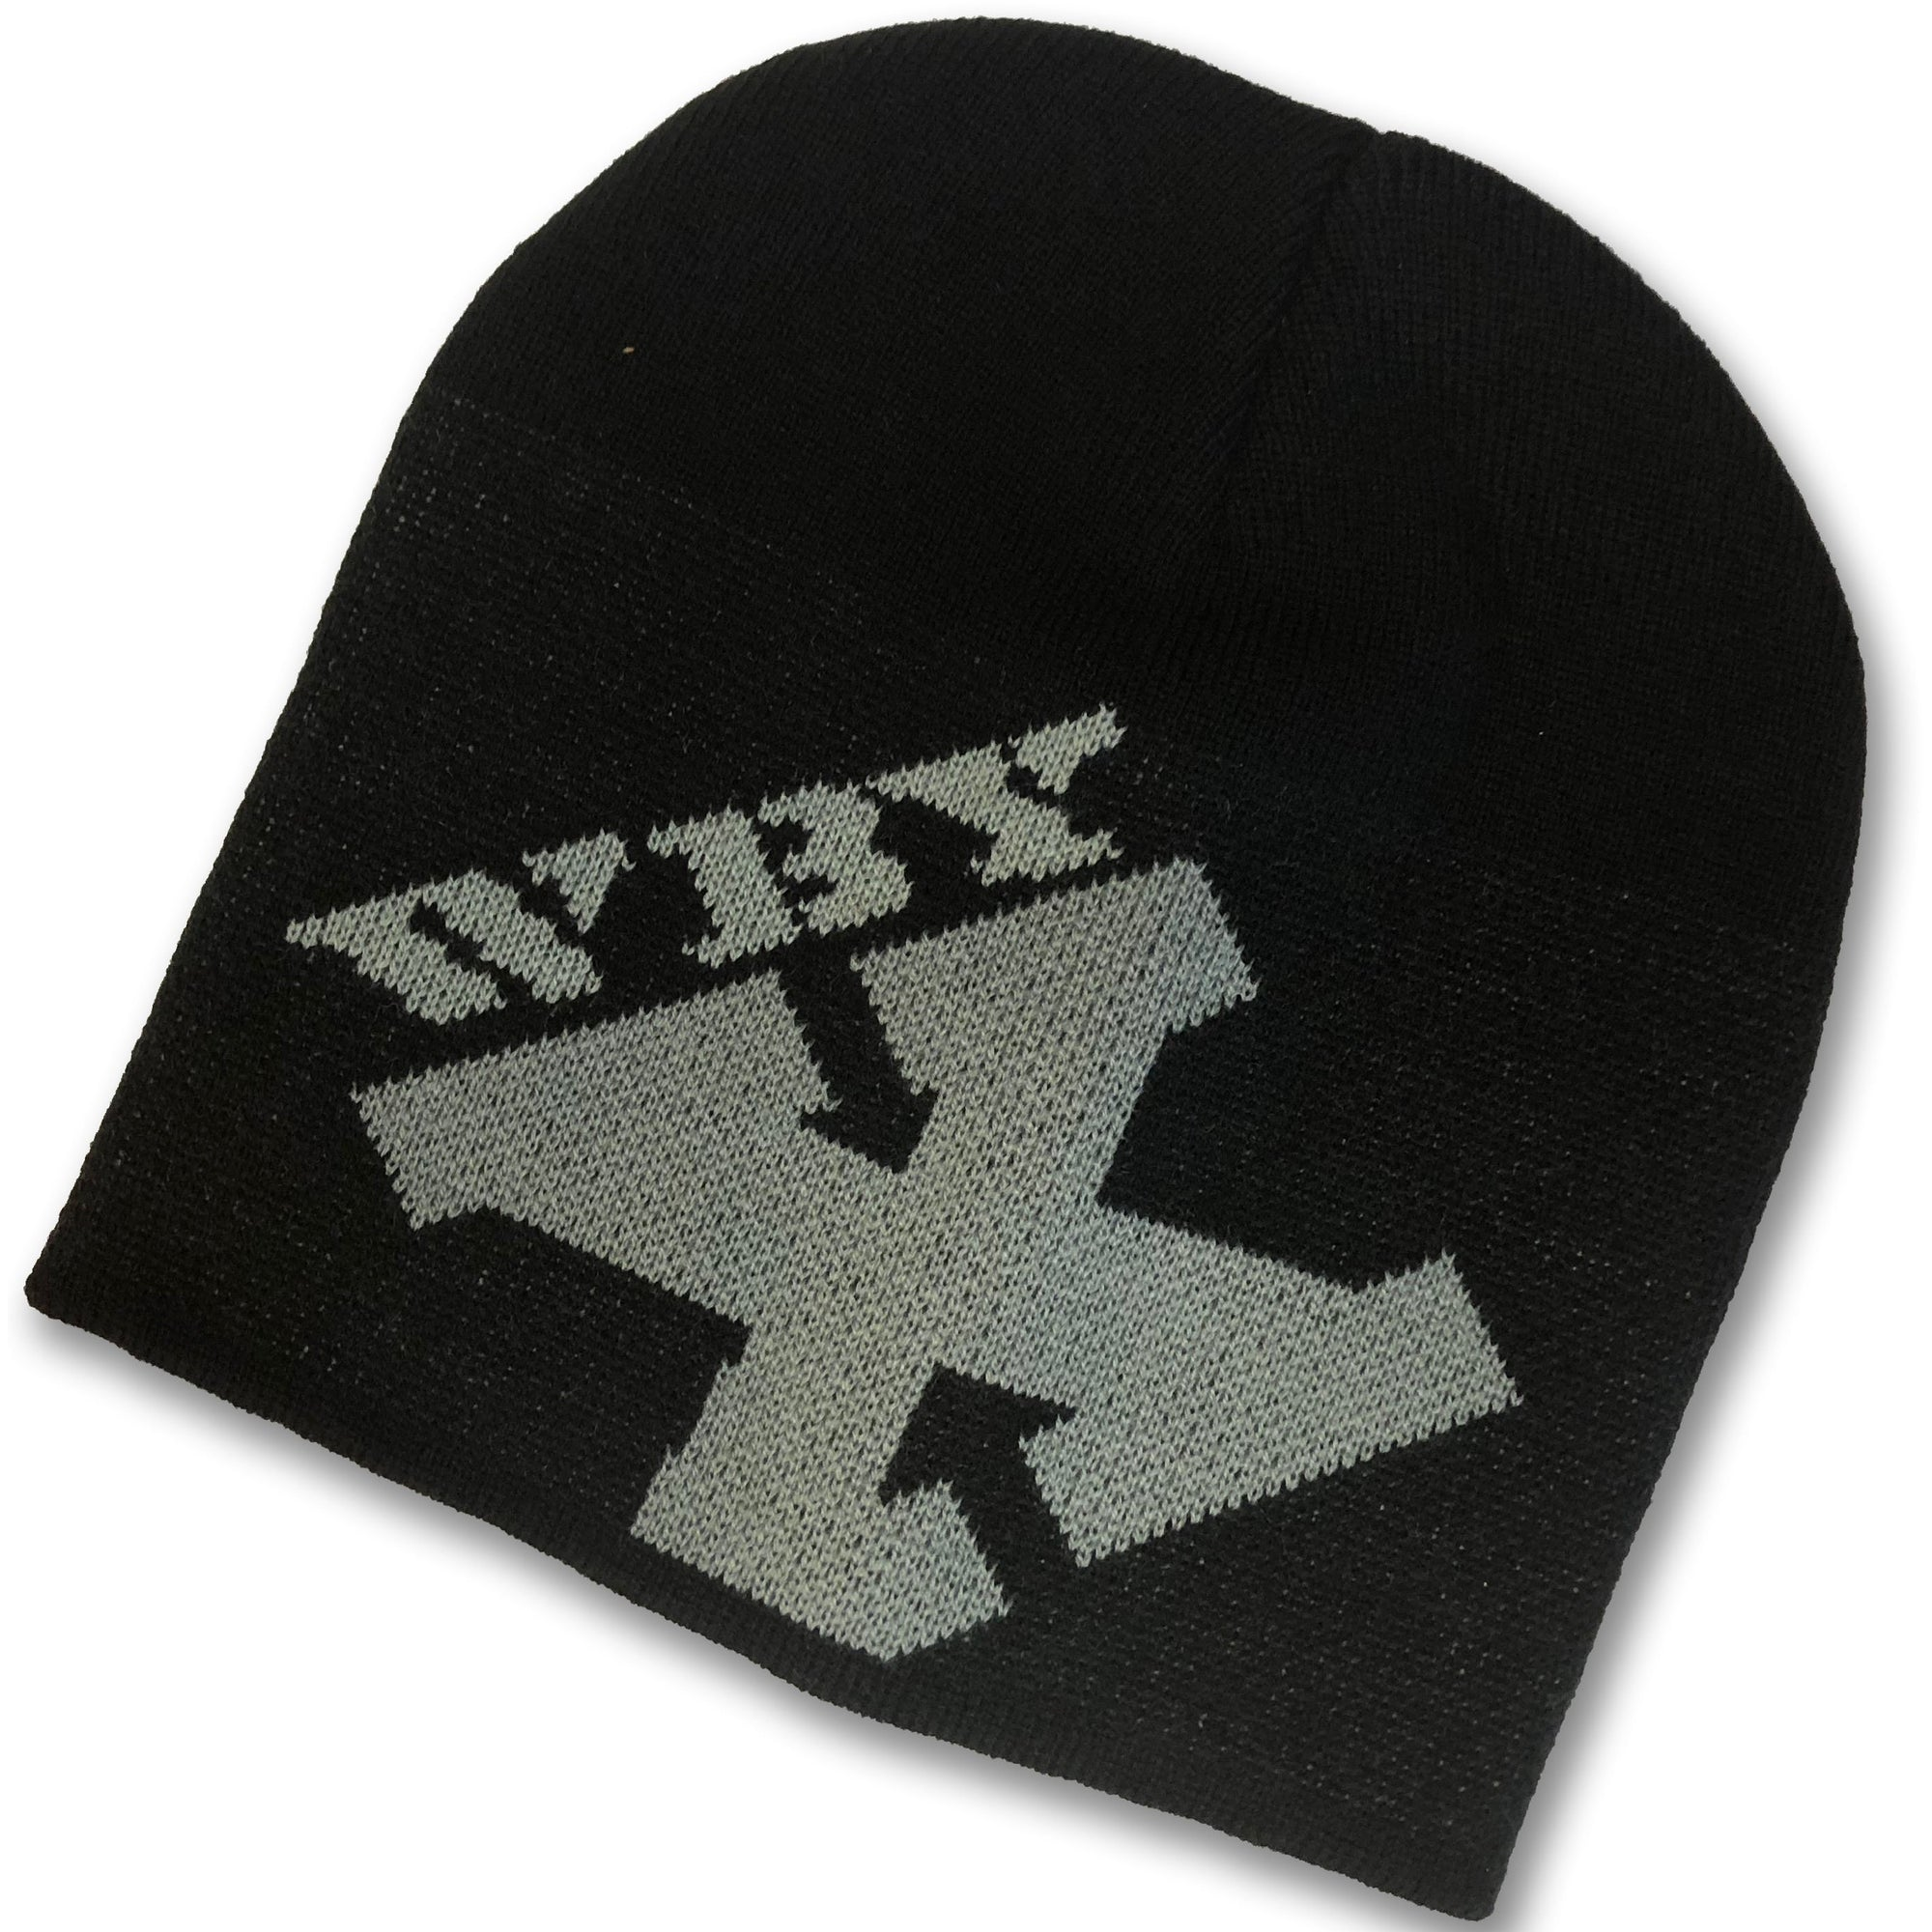 Weatherby WBY-X Beanie,Clothing- Canada Brass